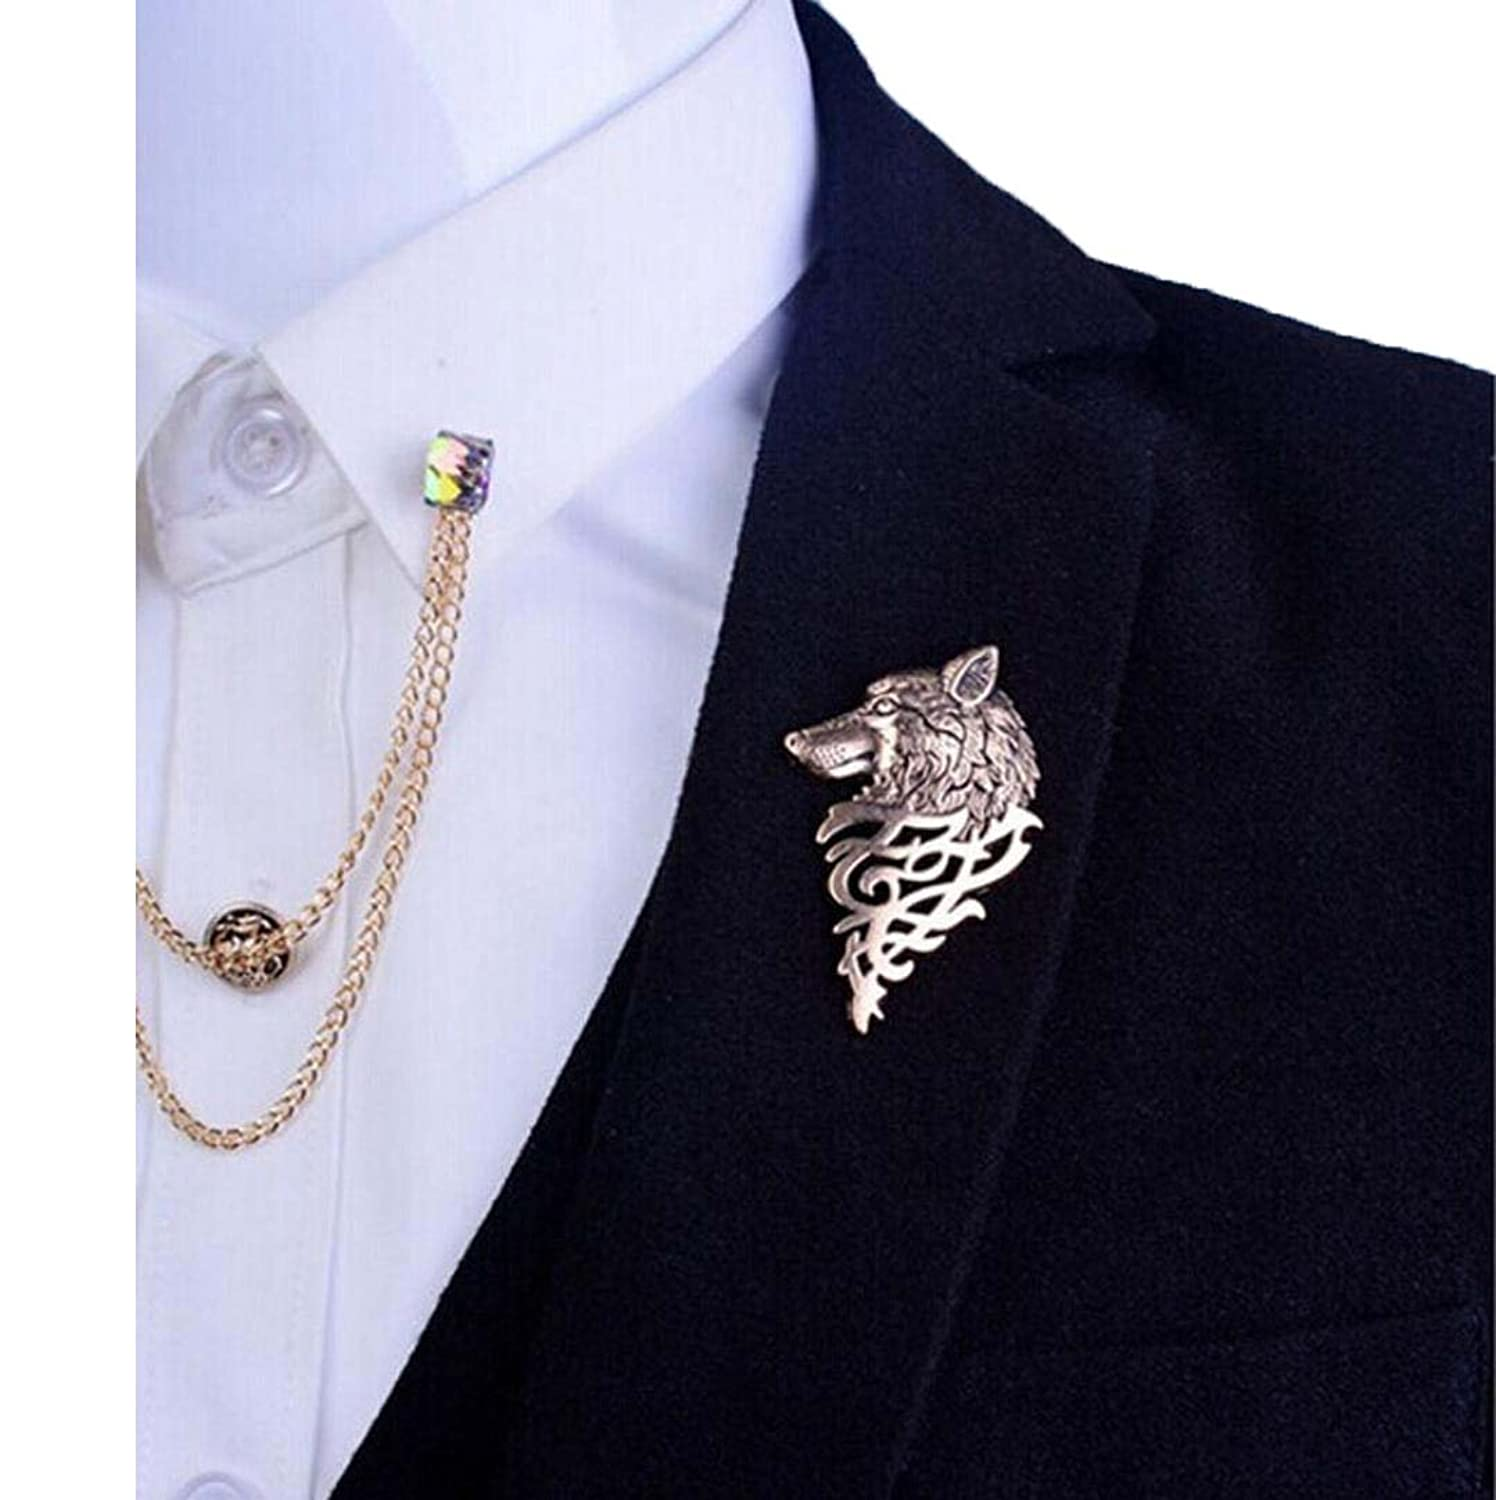 suit brooch tuxedo satin clothing wool lyst lapel jacket black marc gallery jacobs embellished